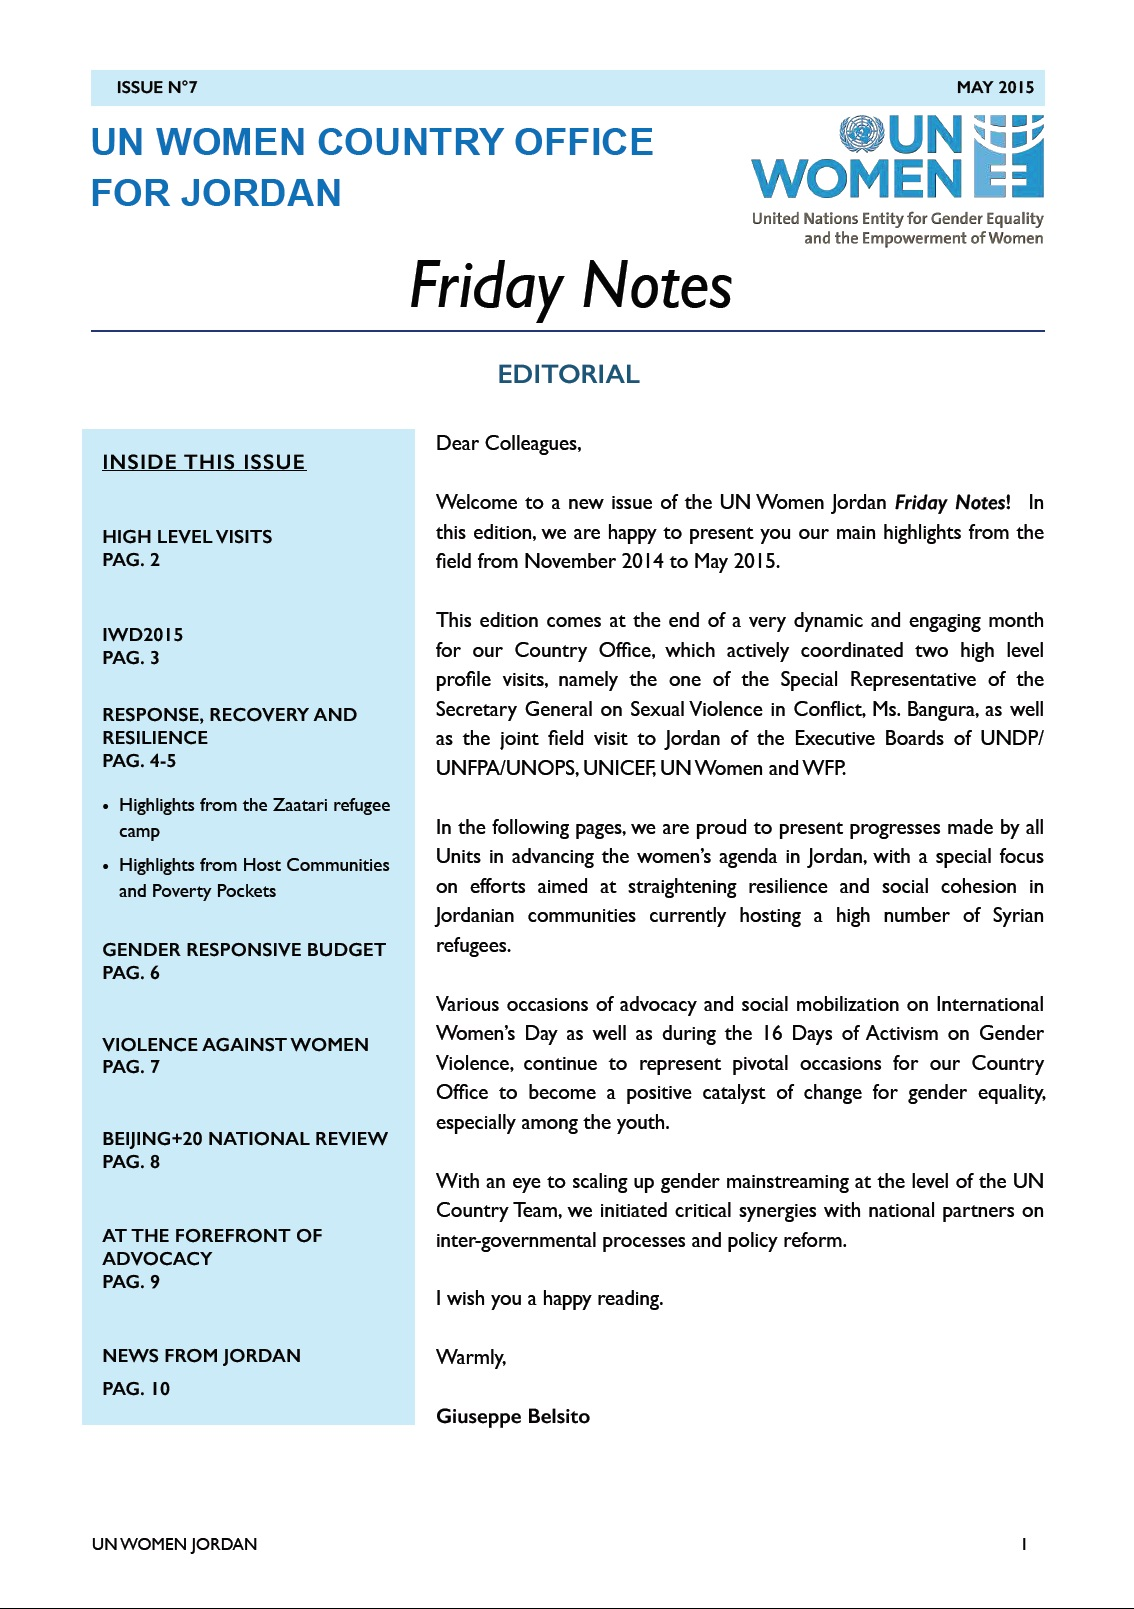 Friday Notes, issue n.7